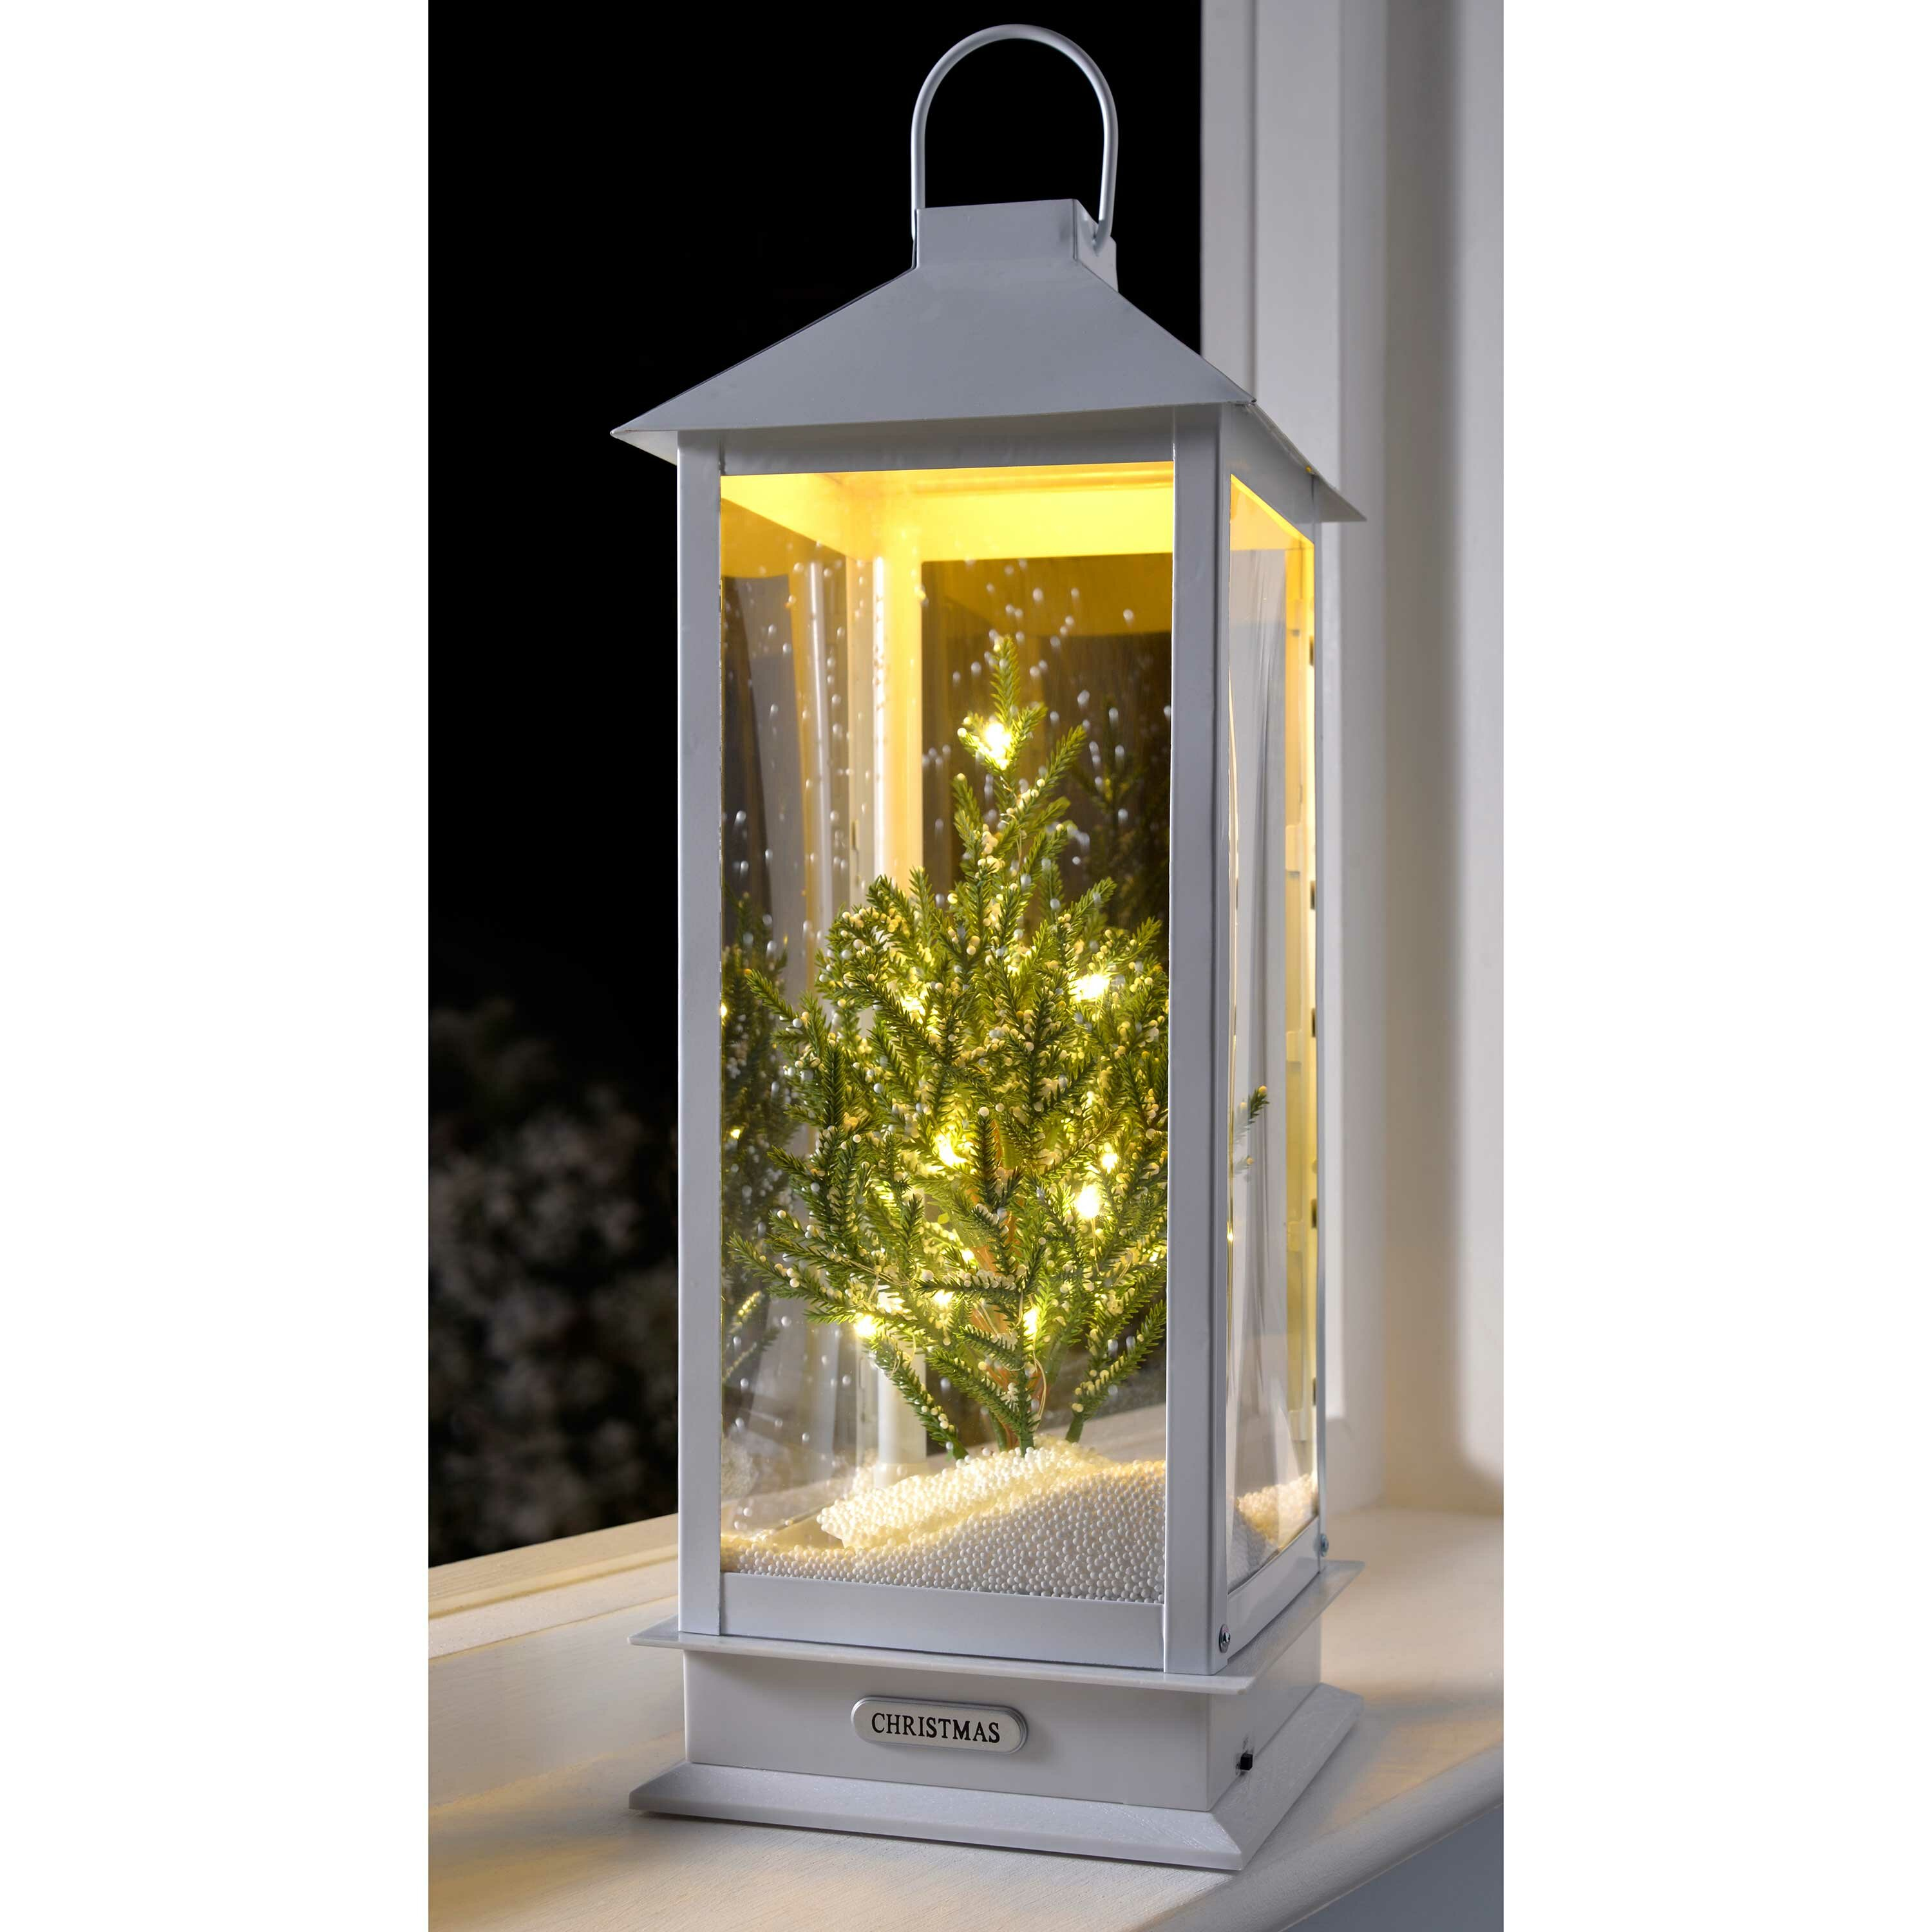 Snowing Christmas Tree.20 White Green Pre Lit Led Snowing Christmas Tree Wood Lamp